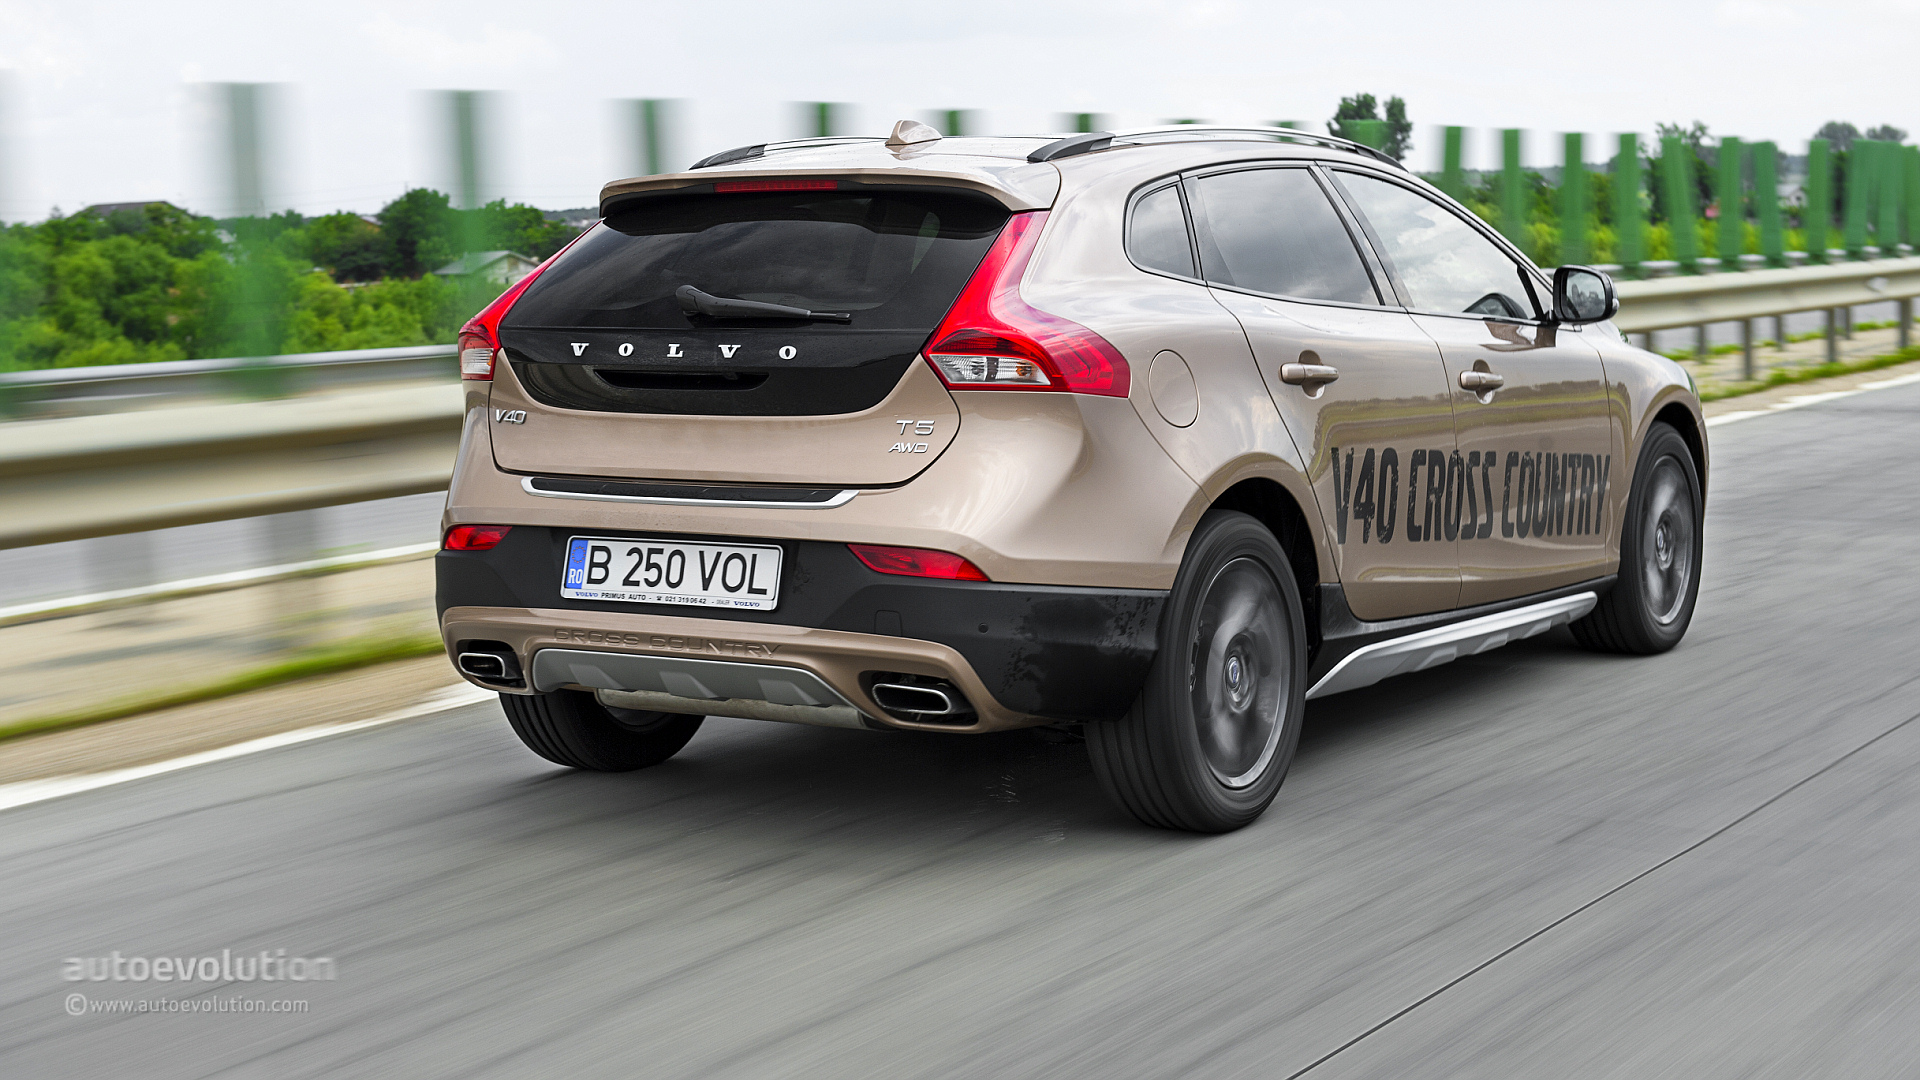 Mercedes Gla 220 Cdi Vs Volvo V40 Cross Country D4 The Cross Hatch  parison 86578 on 2015 volvo xc60 awd t6